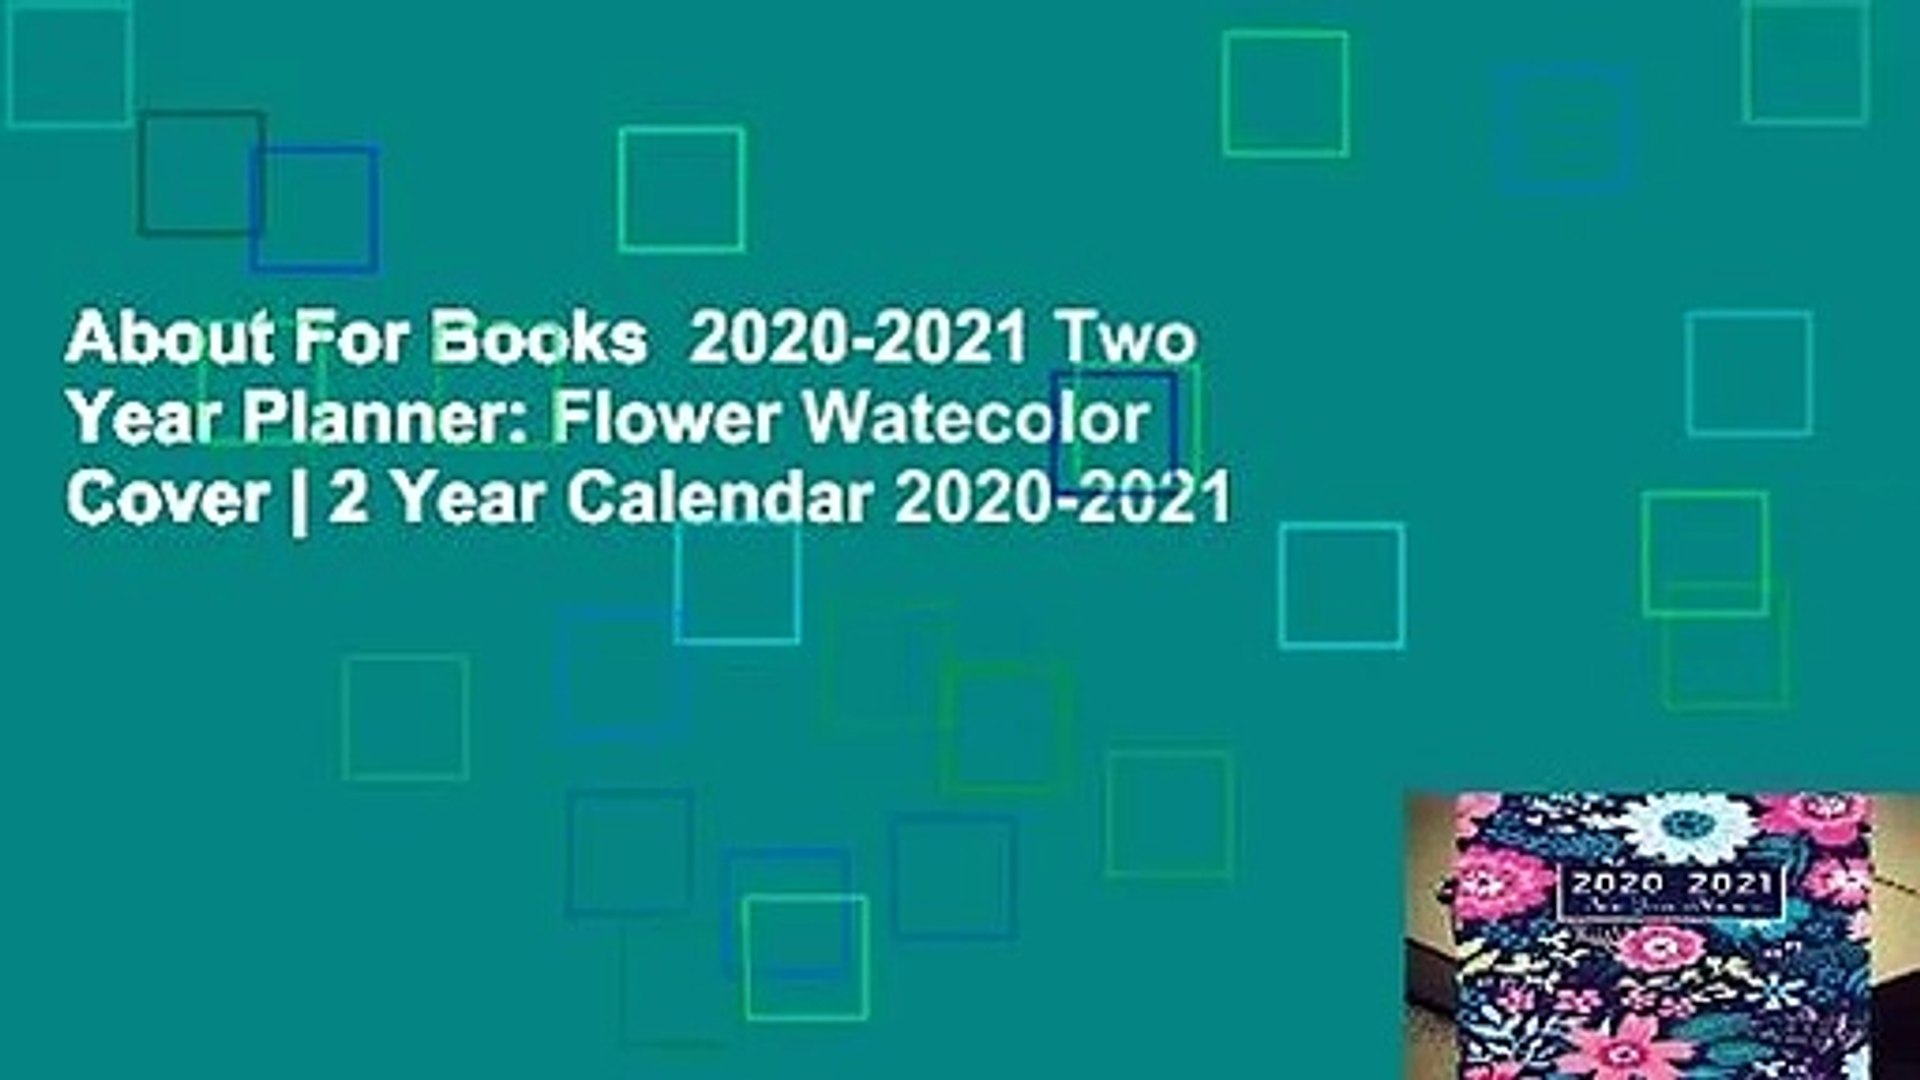 About For Books  2020-2021 Two Year Planner: Flower Watecolor Cover | 2 Year Calendar 2020-2021